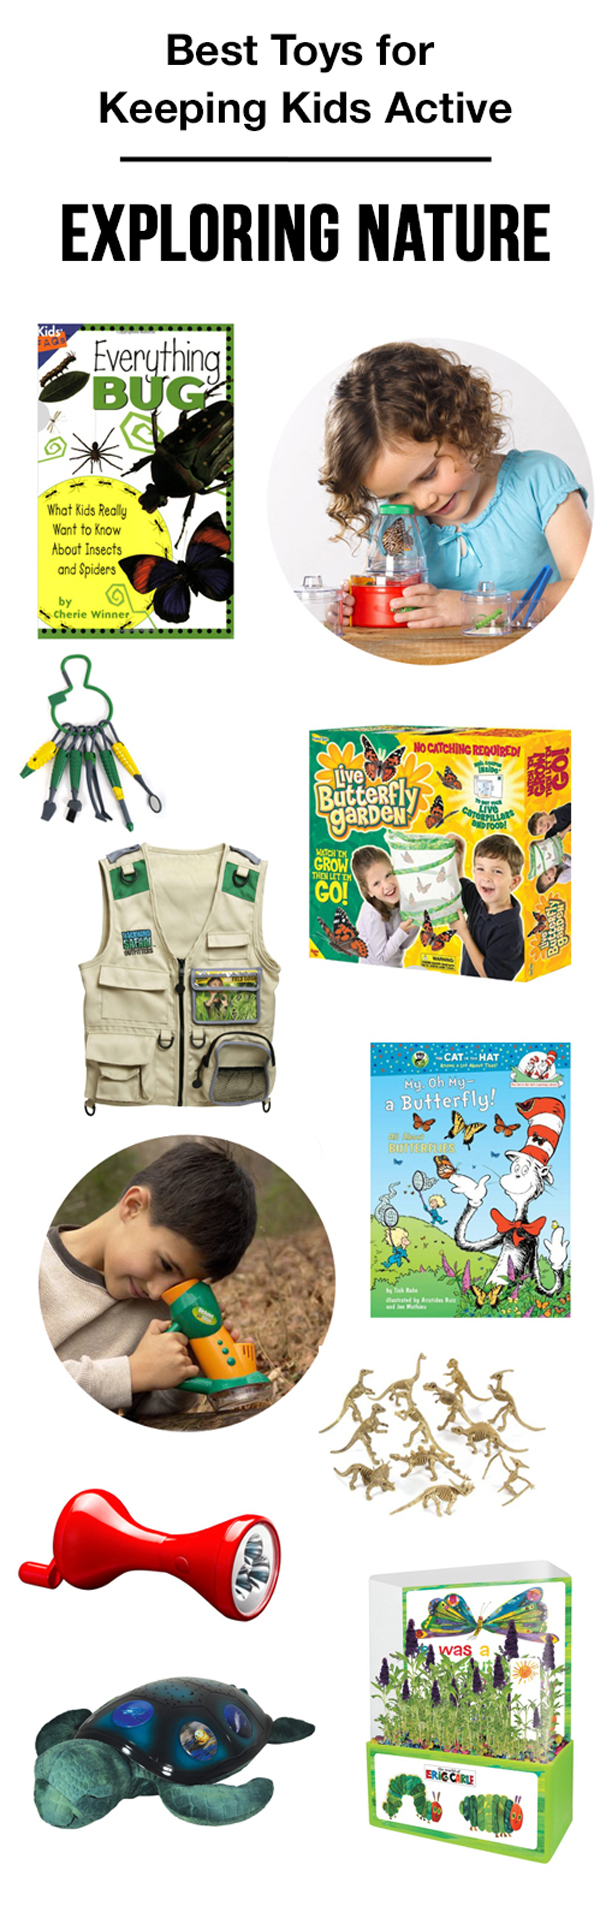 besttoysactivenature